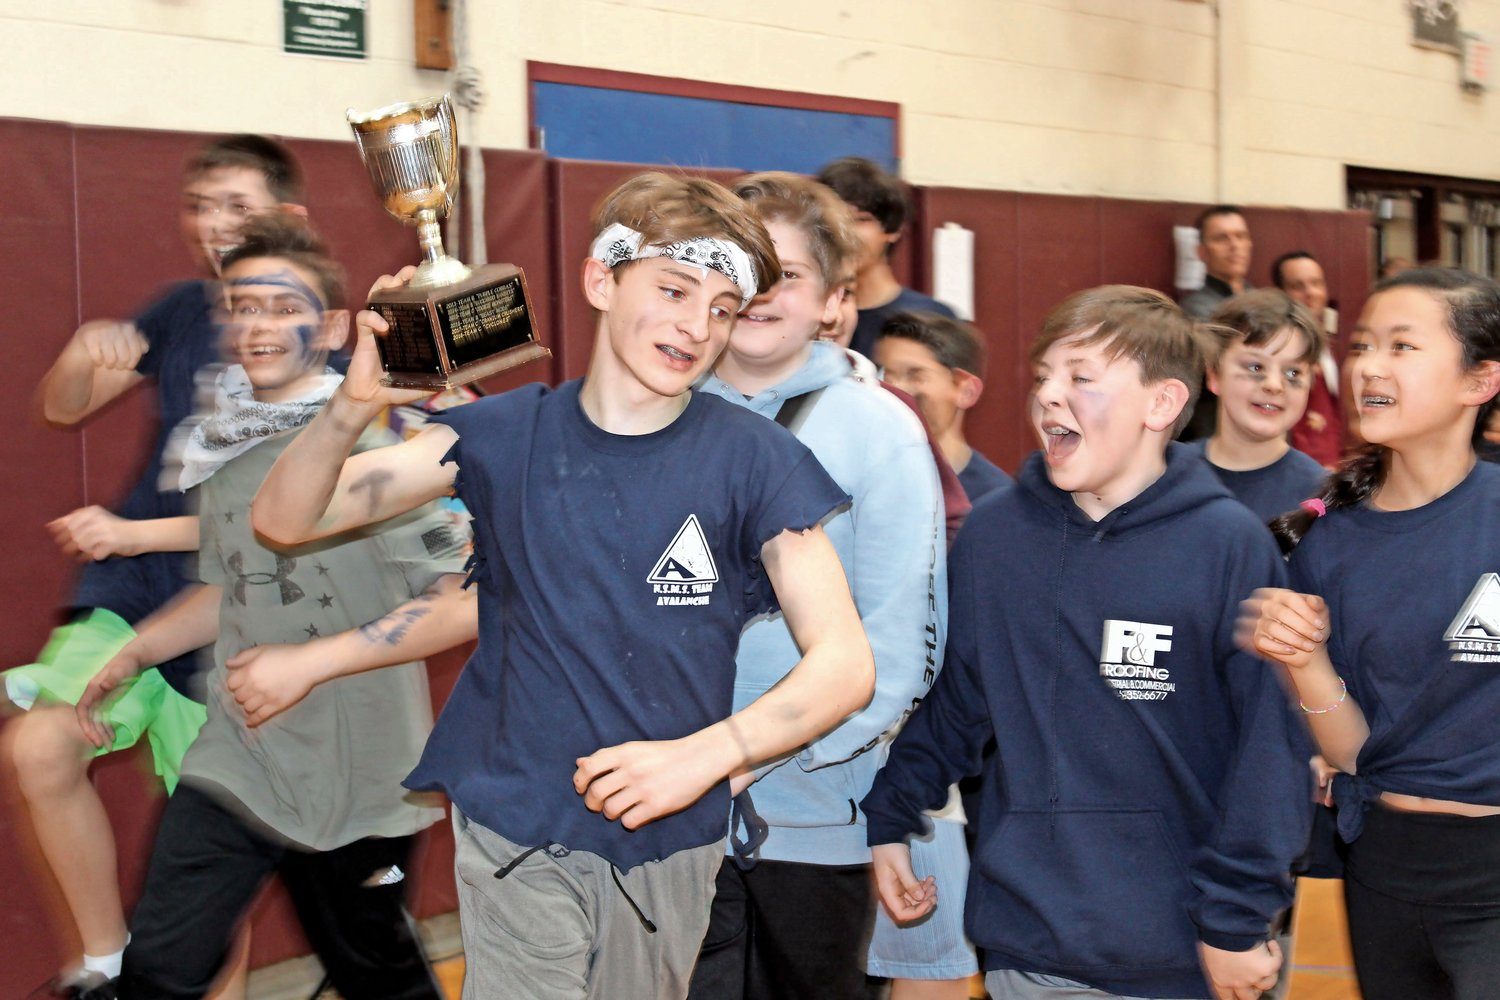 Seventh grader Luke Potapov took a victory lap after Team Avalanche prevailed.